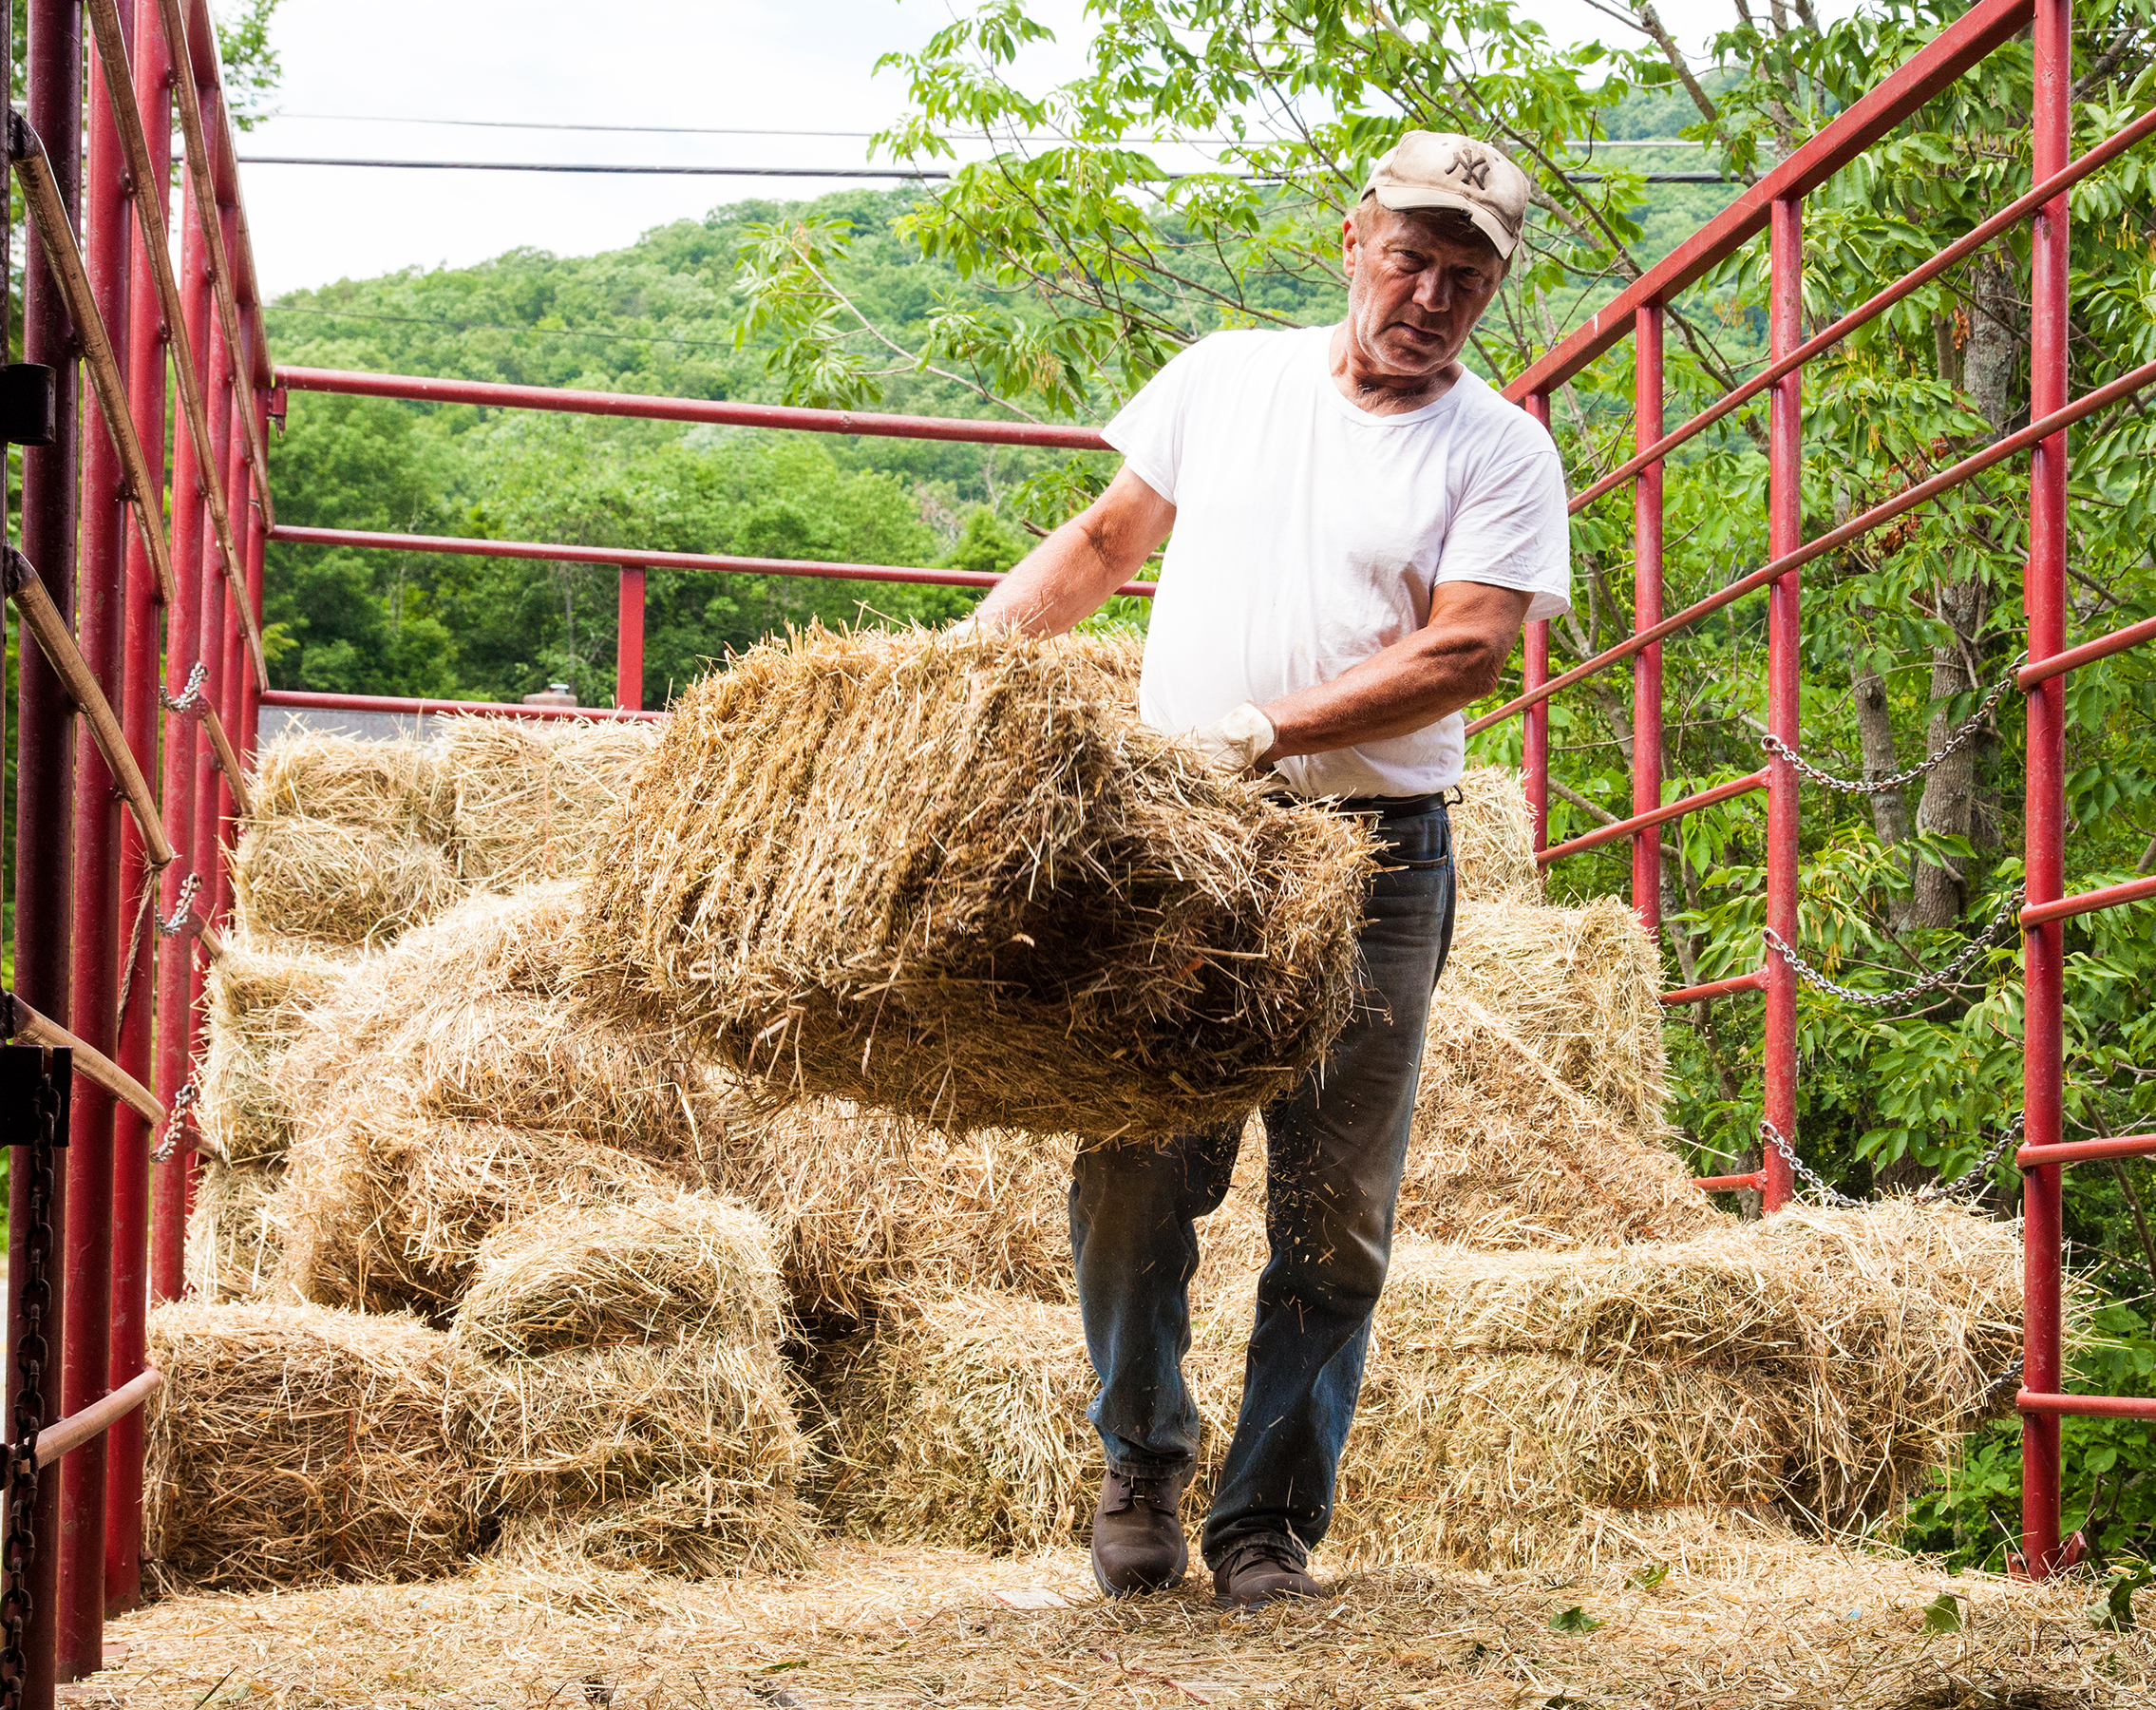 HAY-STACKING-FARMER-KEN-STONEWALL-DAIRY-FARM-2016-©-JONATHAN-R.-BECKERMAN-PHOTOGRAPHY-10.jpg